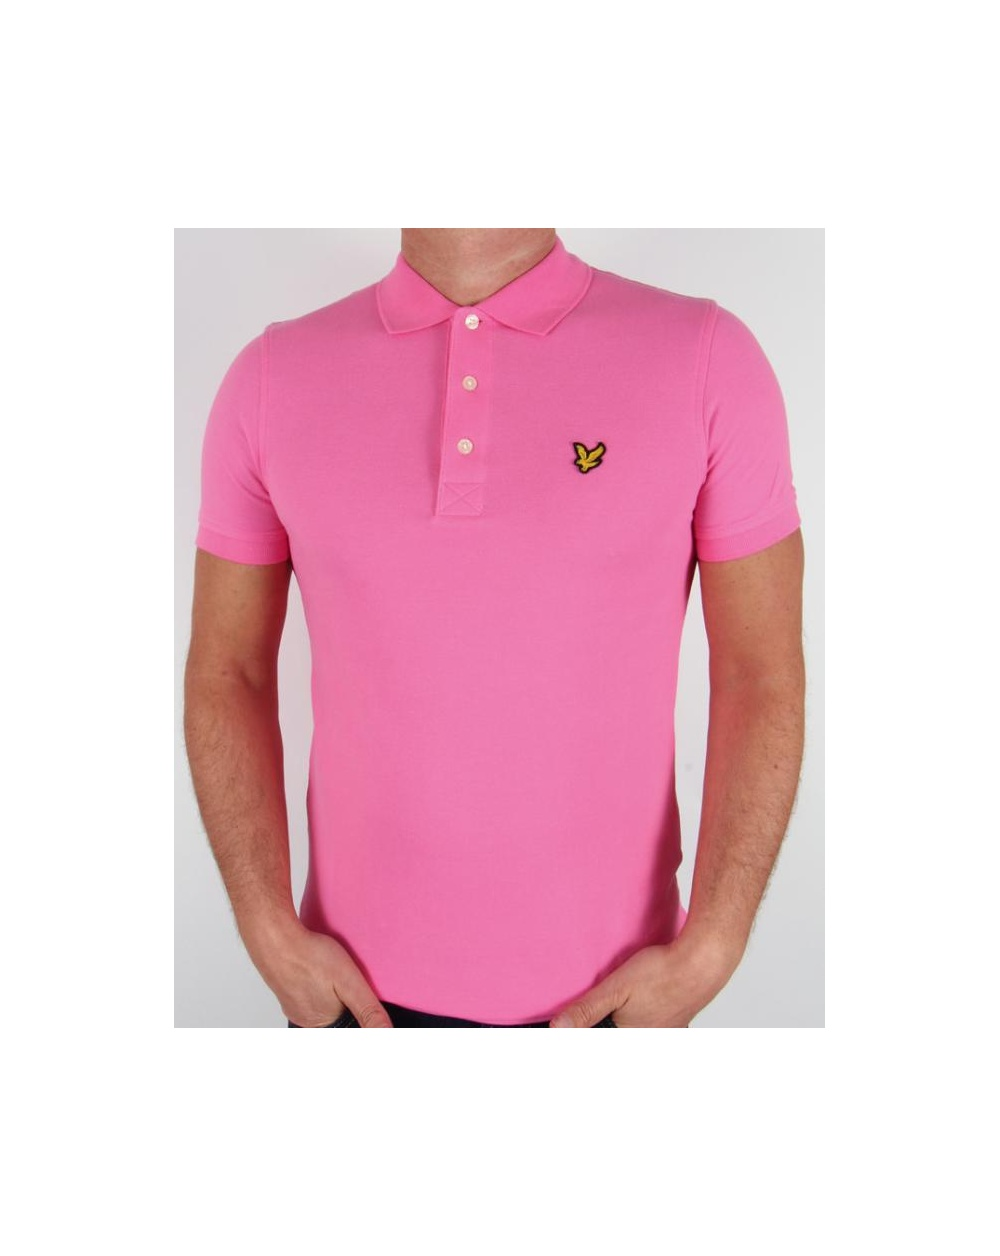 Lyle and scott polo shirt s s hot pink lyle scott polo for Lyle and scott shirt sale